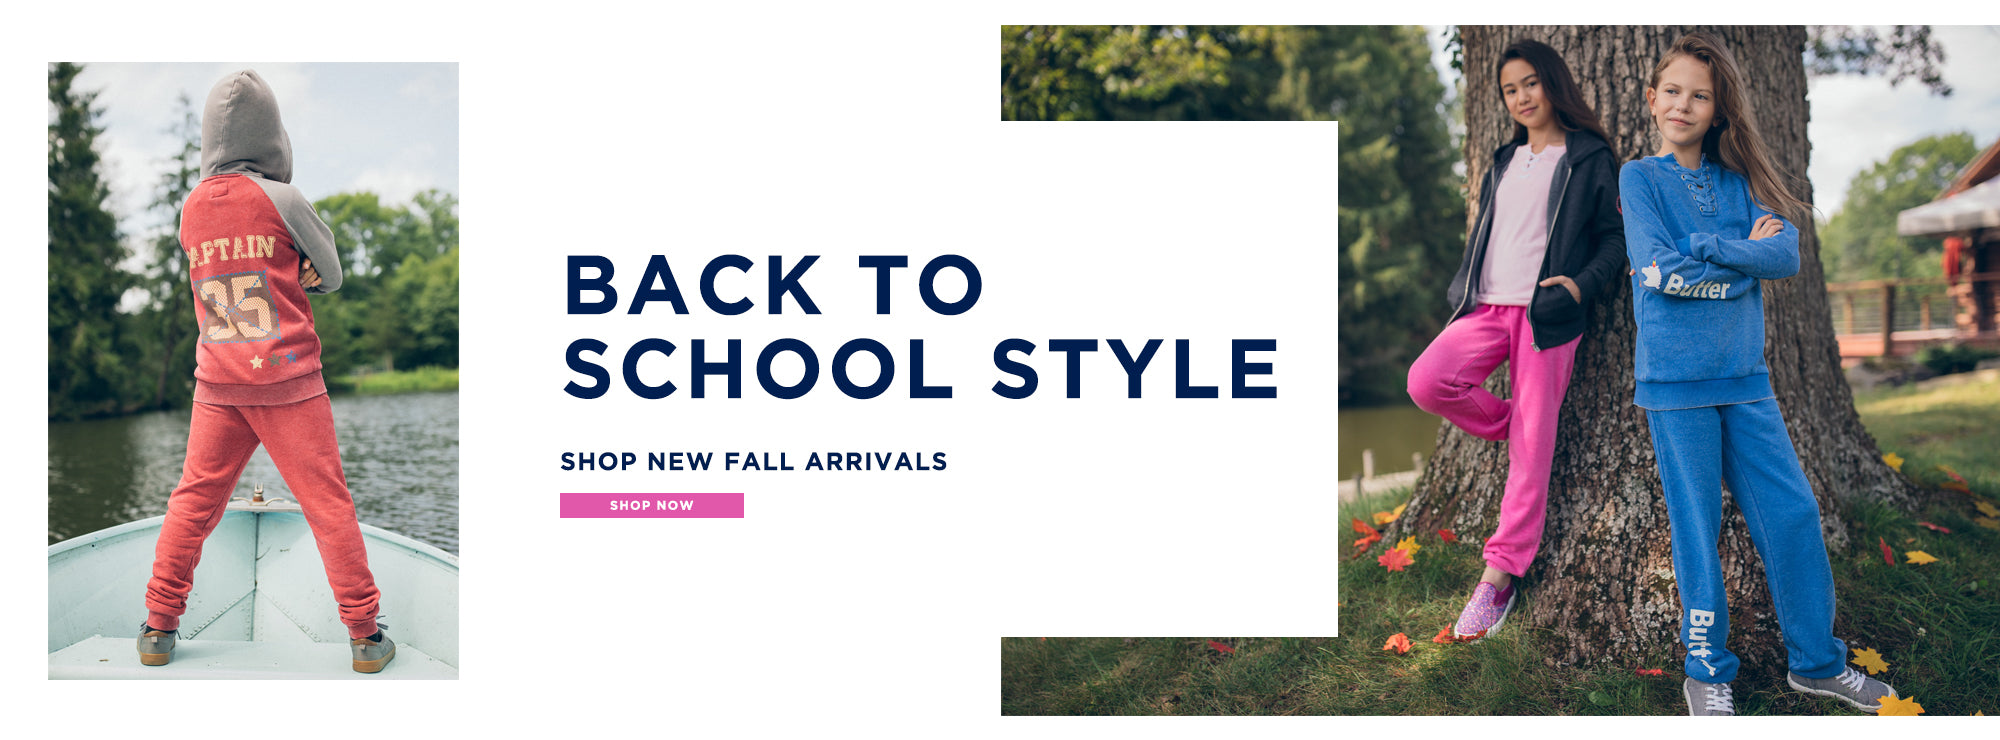 Back to School Style. Shop new fall arrivals. Shop now.